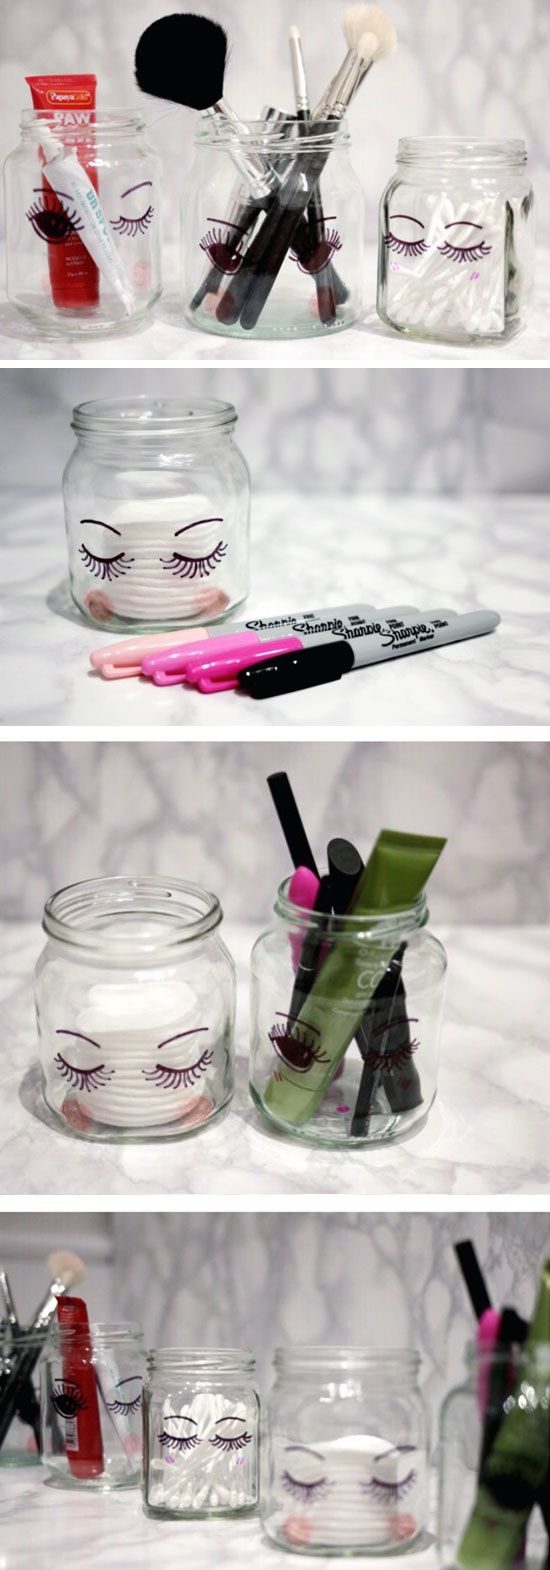 sharpie storage - Google Search